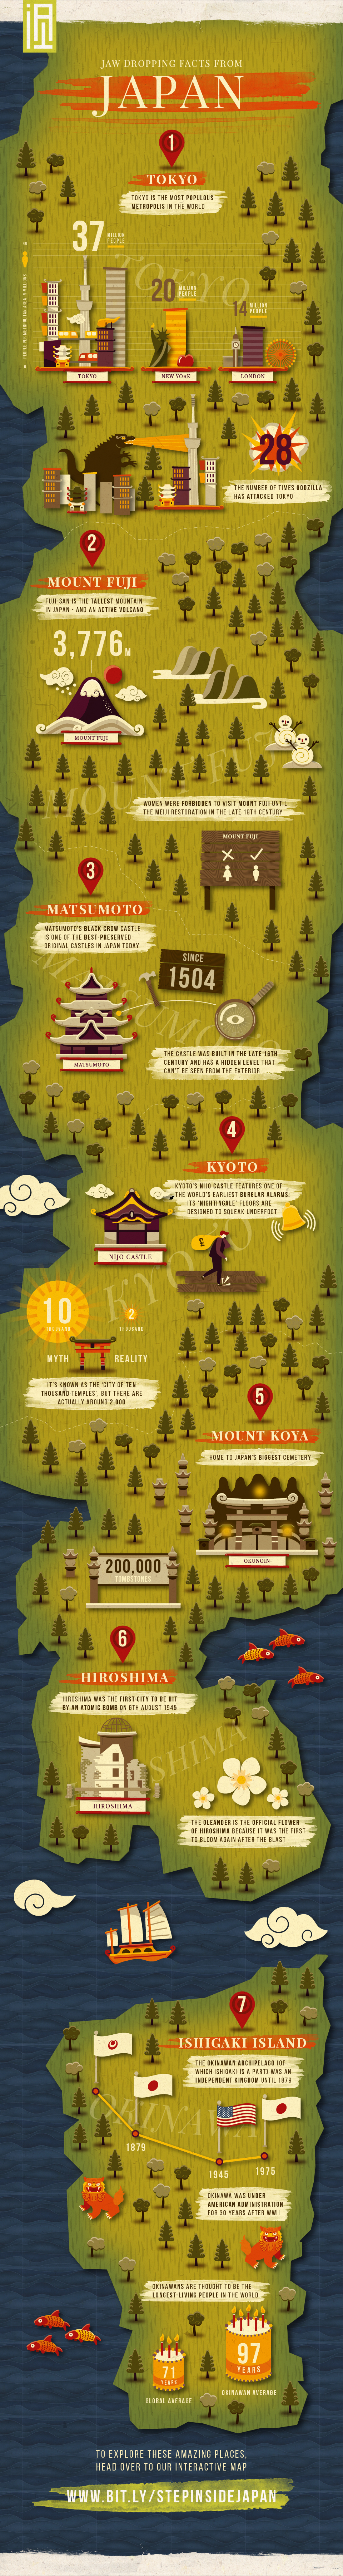 Jaw-Dropping Facts About Japan